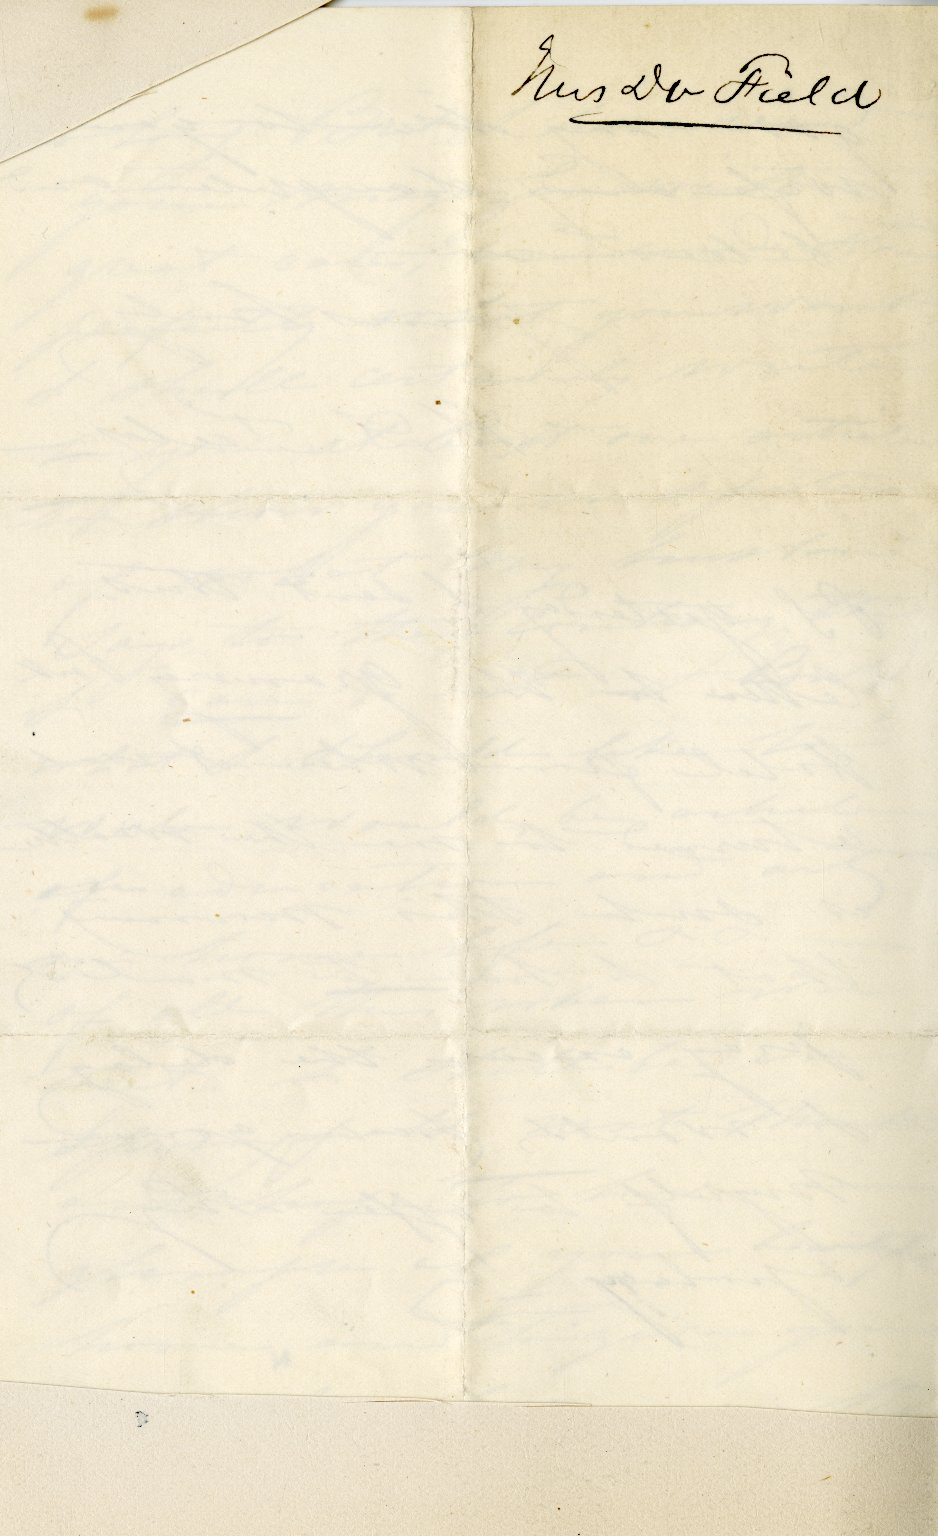 Field, Mrs. Henry M. ALS, 3 pages, no date.